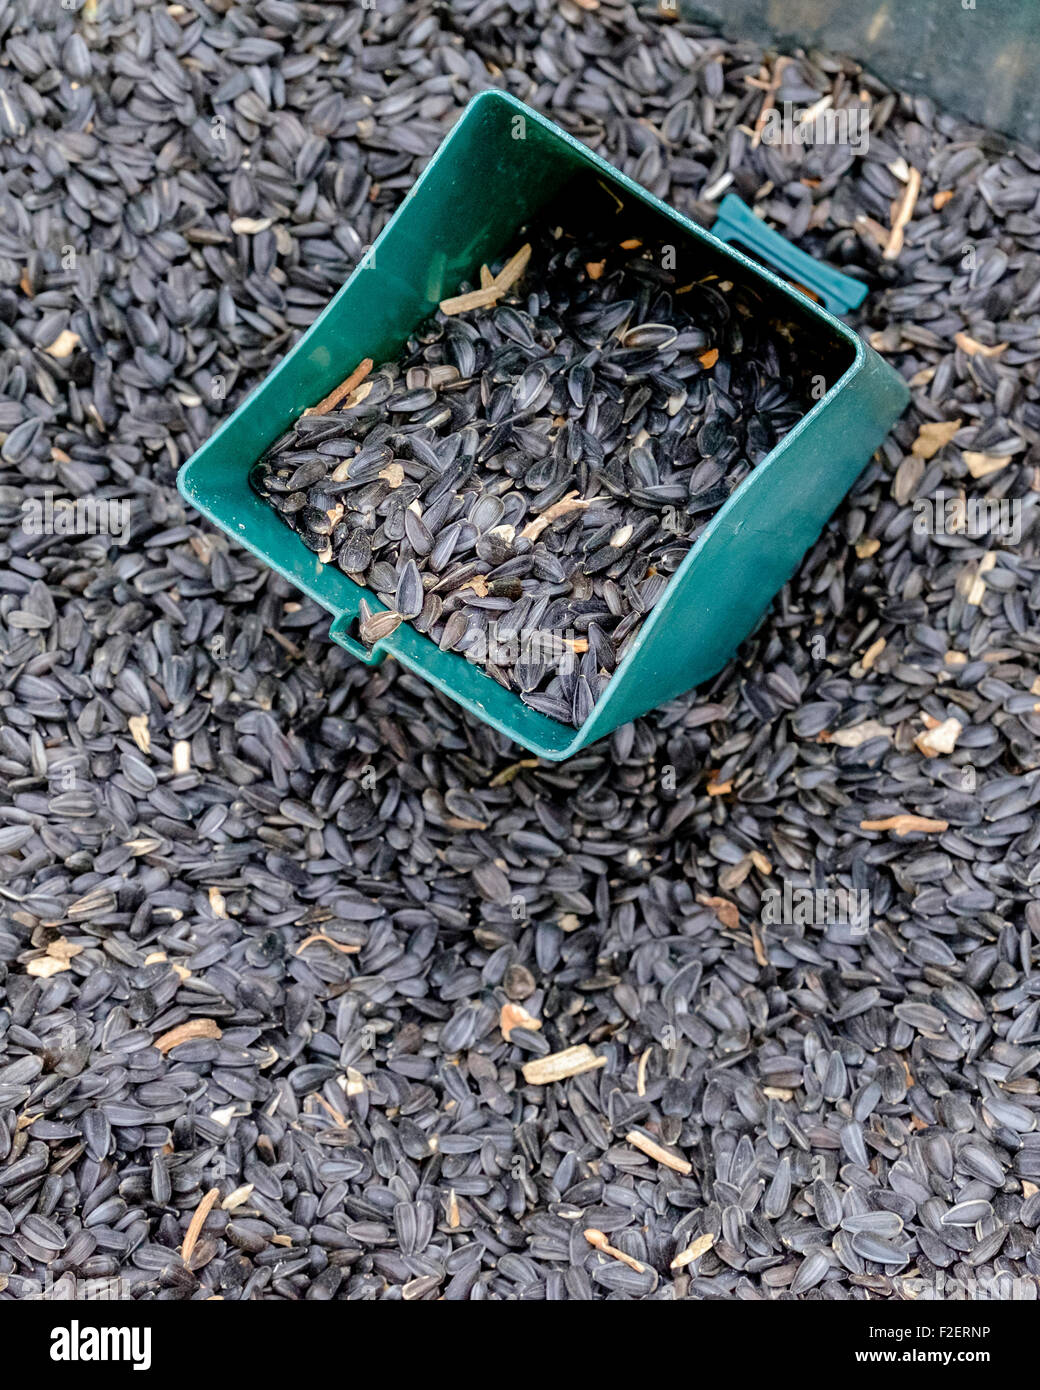 A bin full of sunflower seeds, showing a scoop. A popular seed for wild bird feeding. - Stock Image